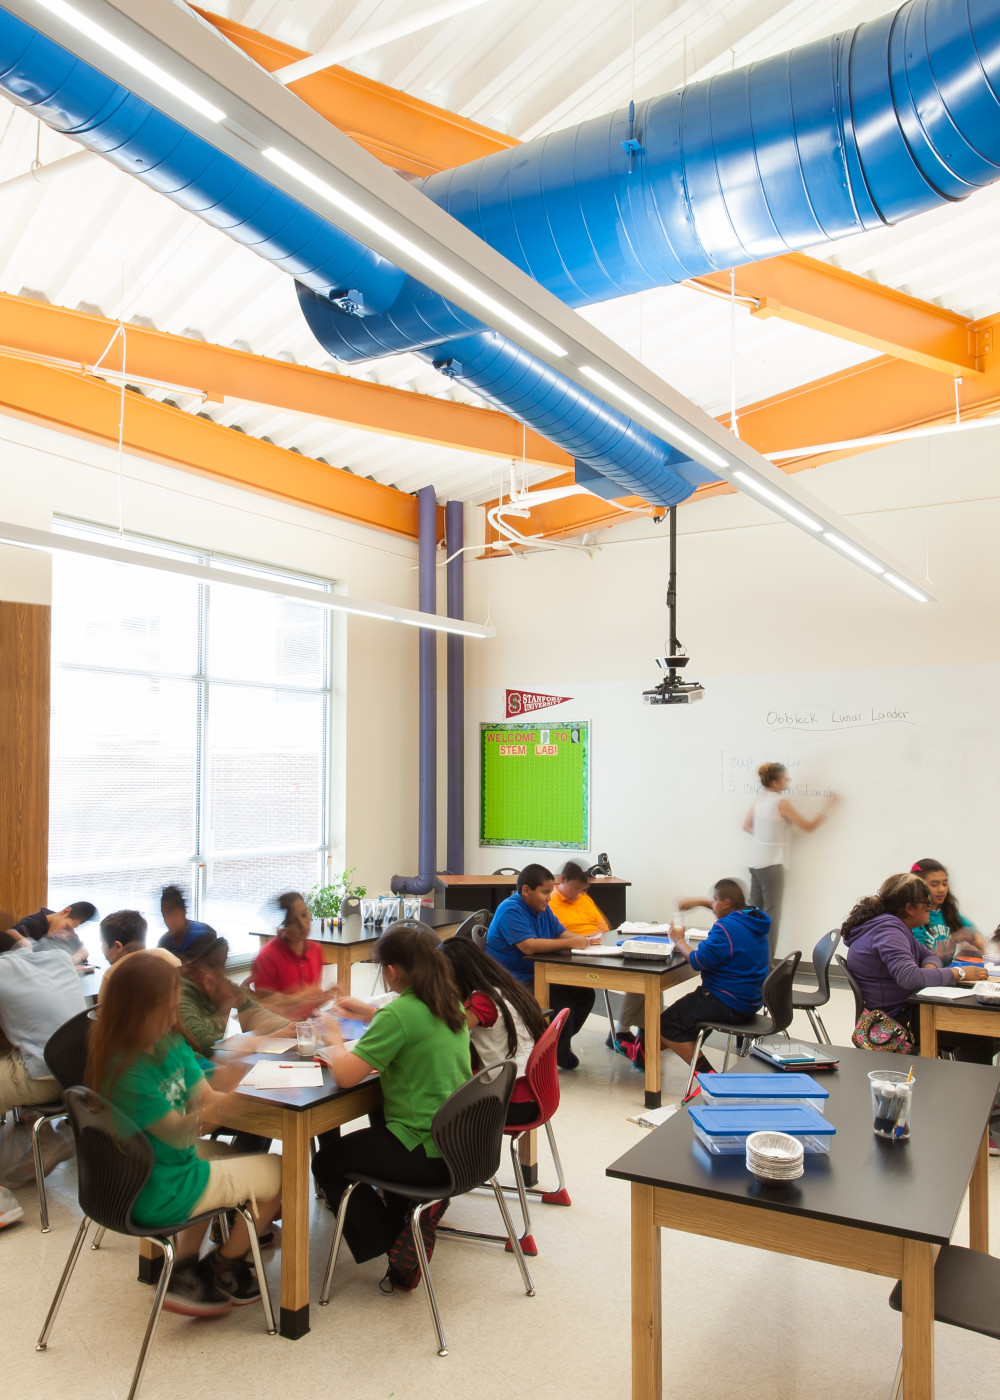 How Does the Push for STEM Effect Classroom Design -